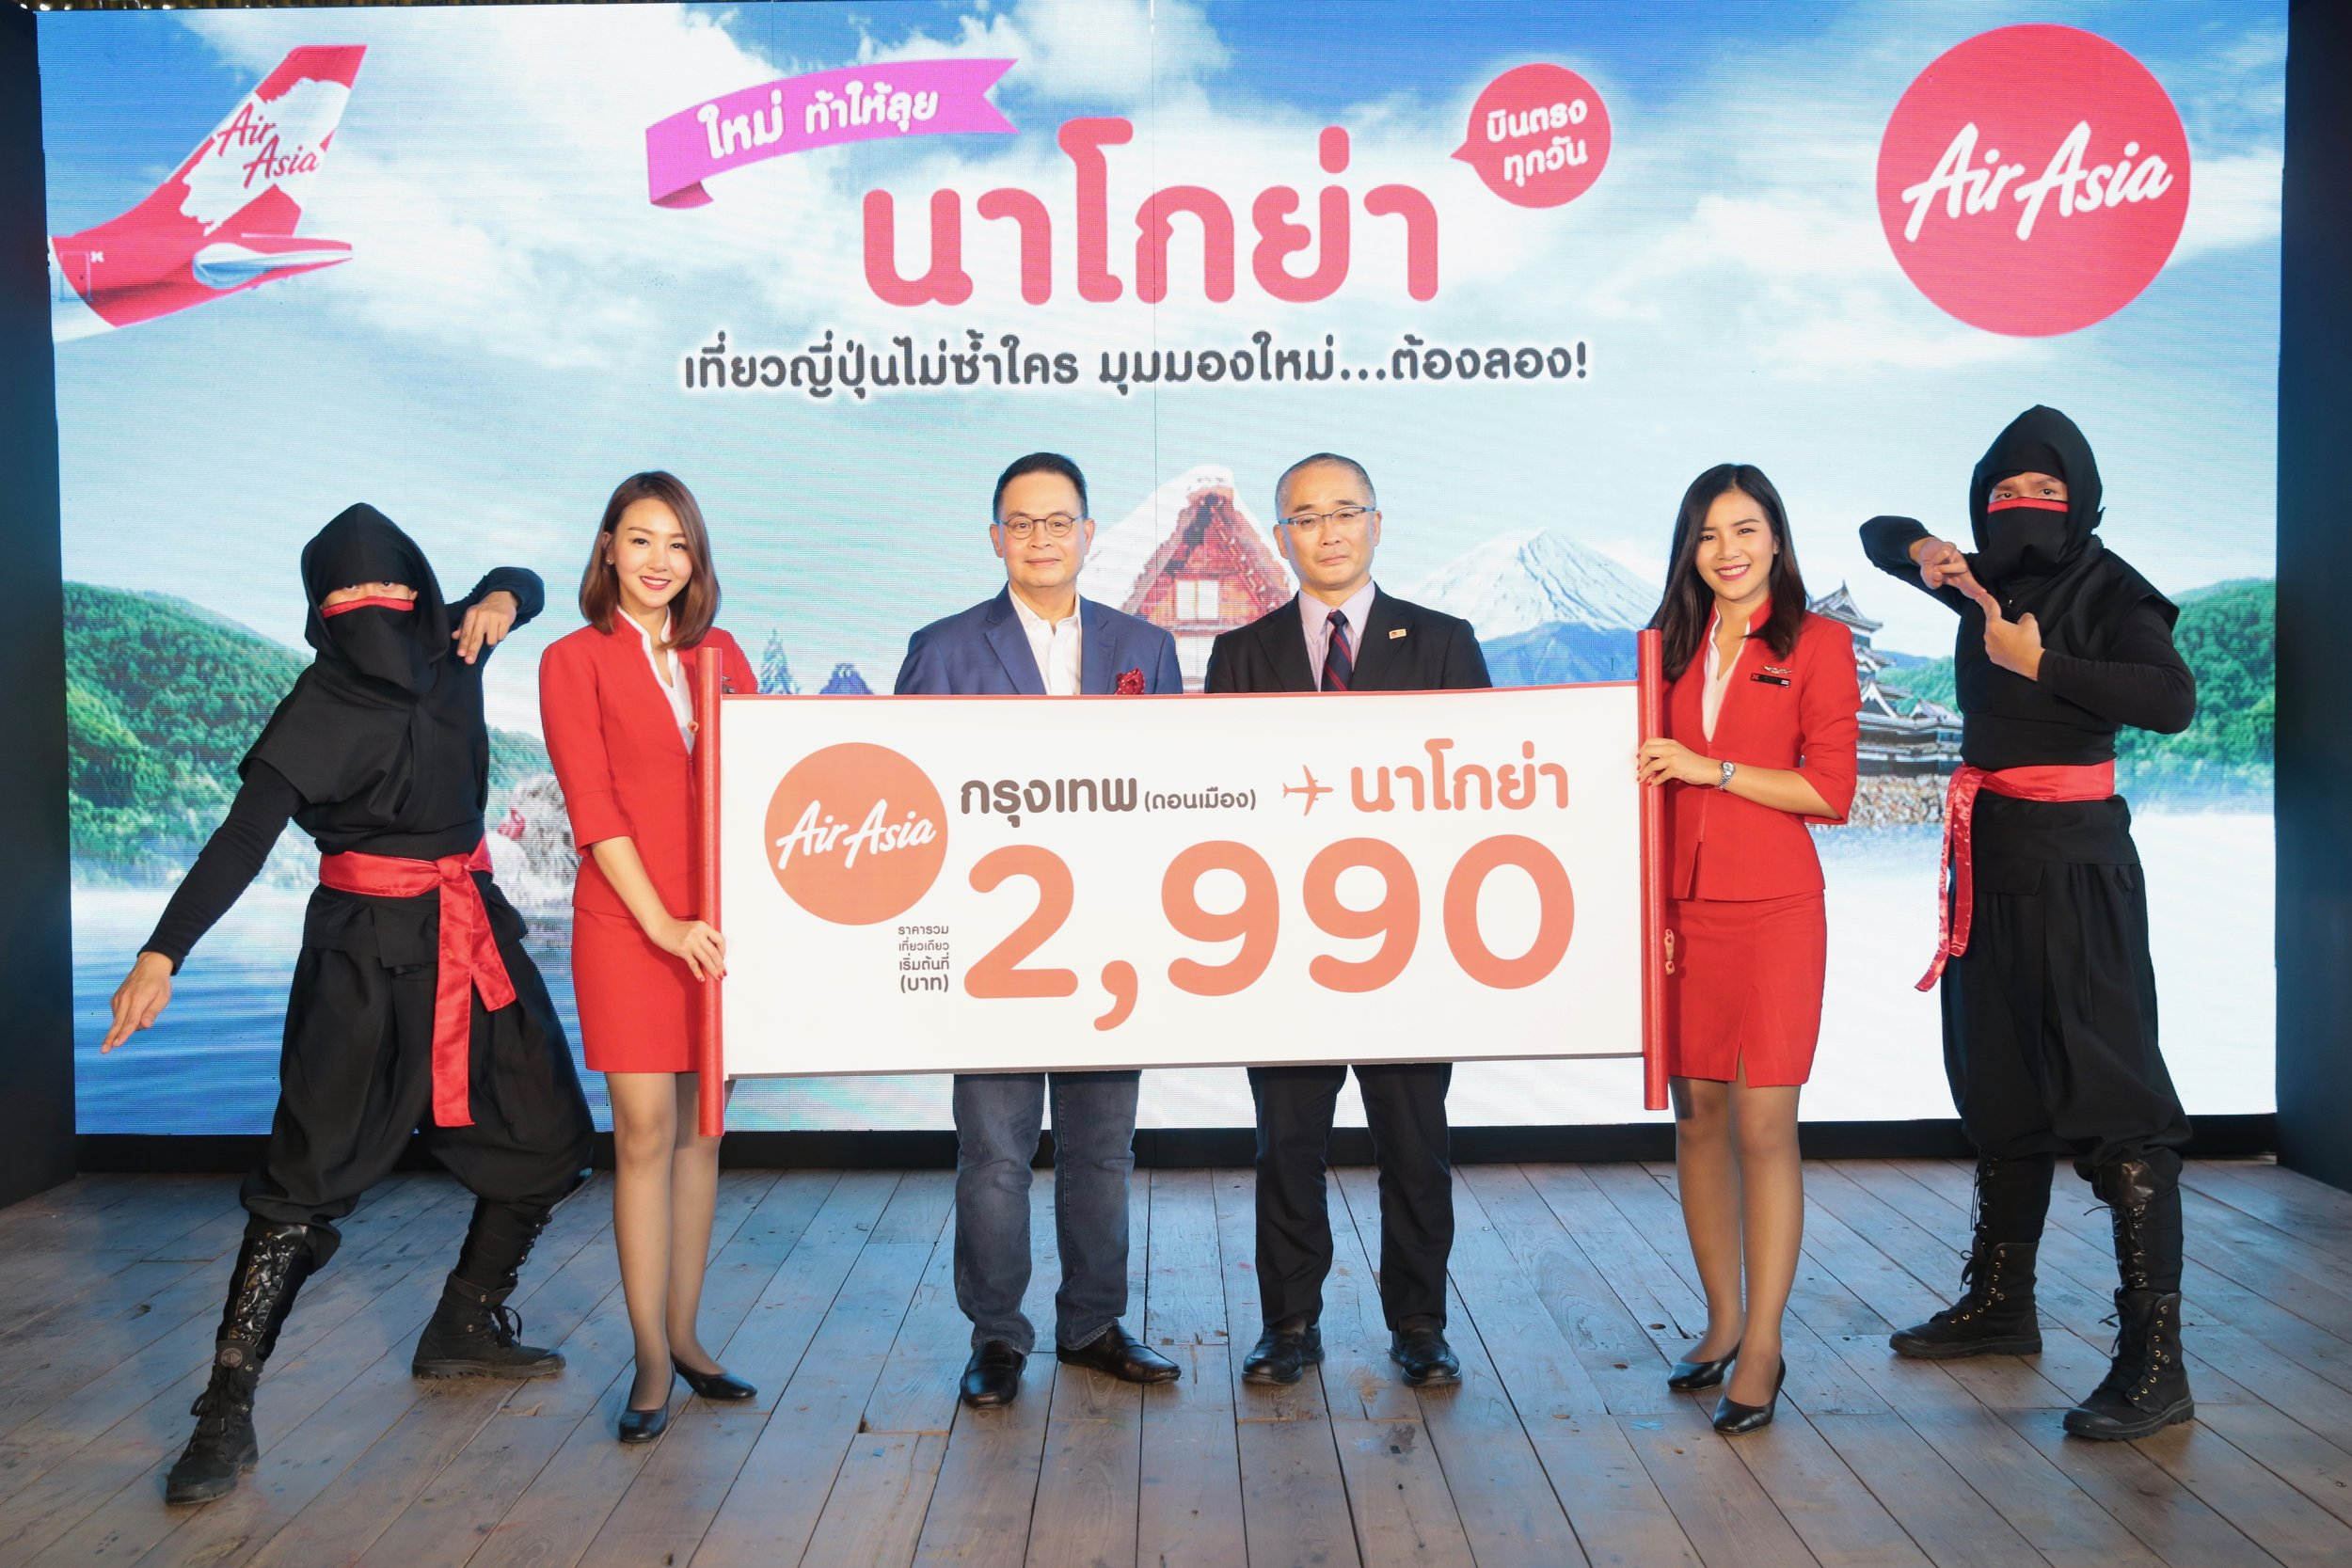 Photo Cation:  (middle left) Mr. Nadda Buranasiri, Chief Executive Officer of Thai AirAsia X, and (middle right) Mr. Eigo Onuma, Executive Director of Japan National Tourism Organization - Bangkok office (JNTO) attend the Thai AirAsia X's launch event of Bangkok (Don Mueang) - Nagoya daily direct flights. Promo fares start at all-in fare THB 2,990. Inaugural flight begins on 30 October 2018.